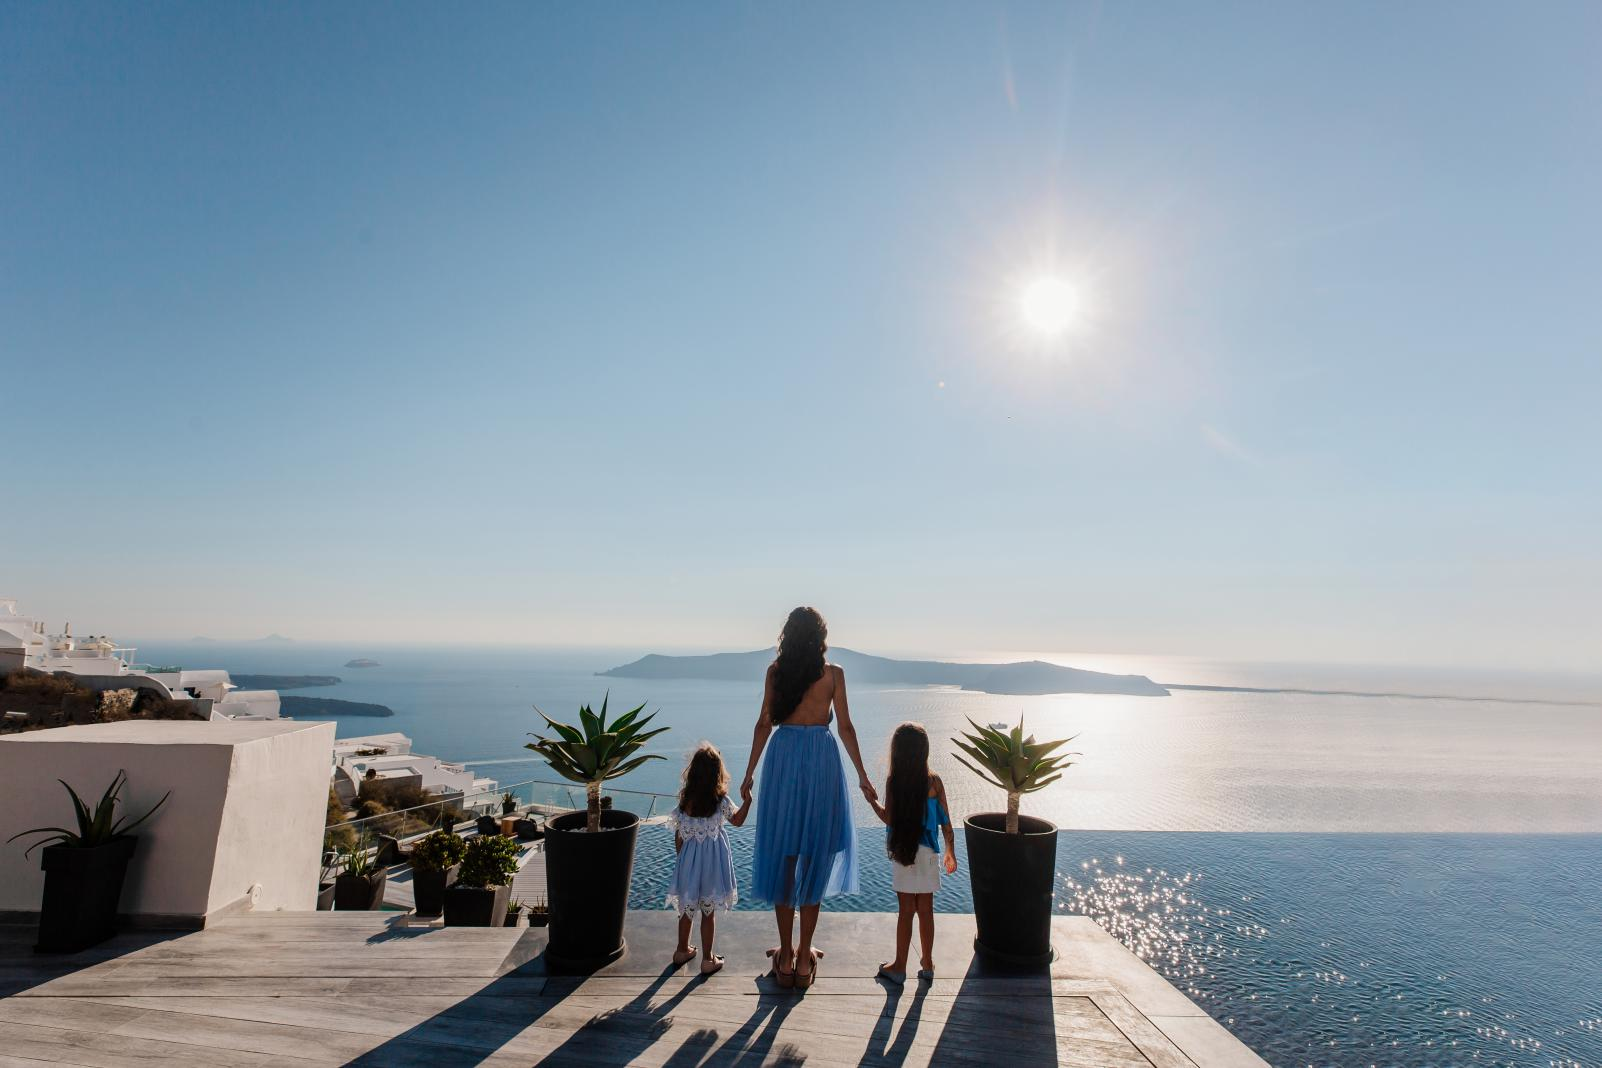 Mom and kids enjoying the caldera view in Santorini KidsLoveGreece.com